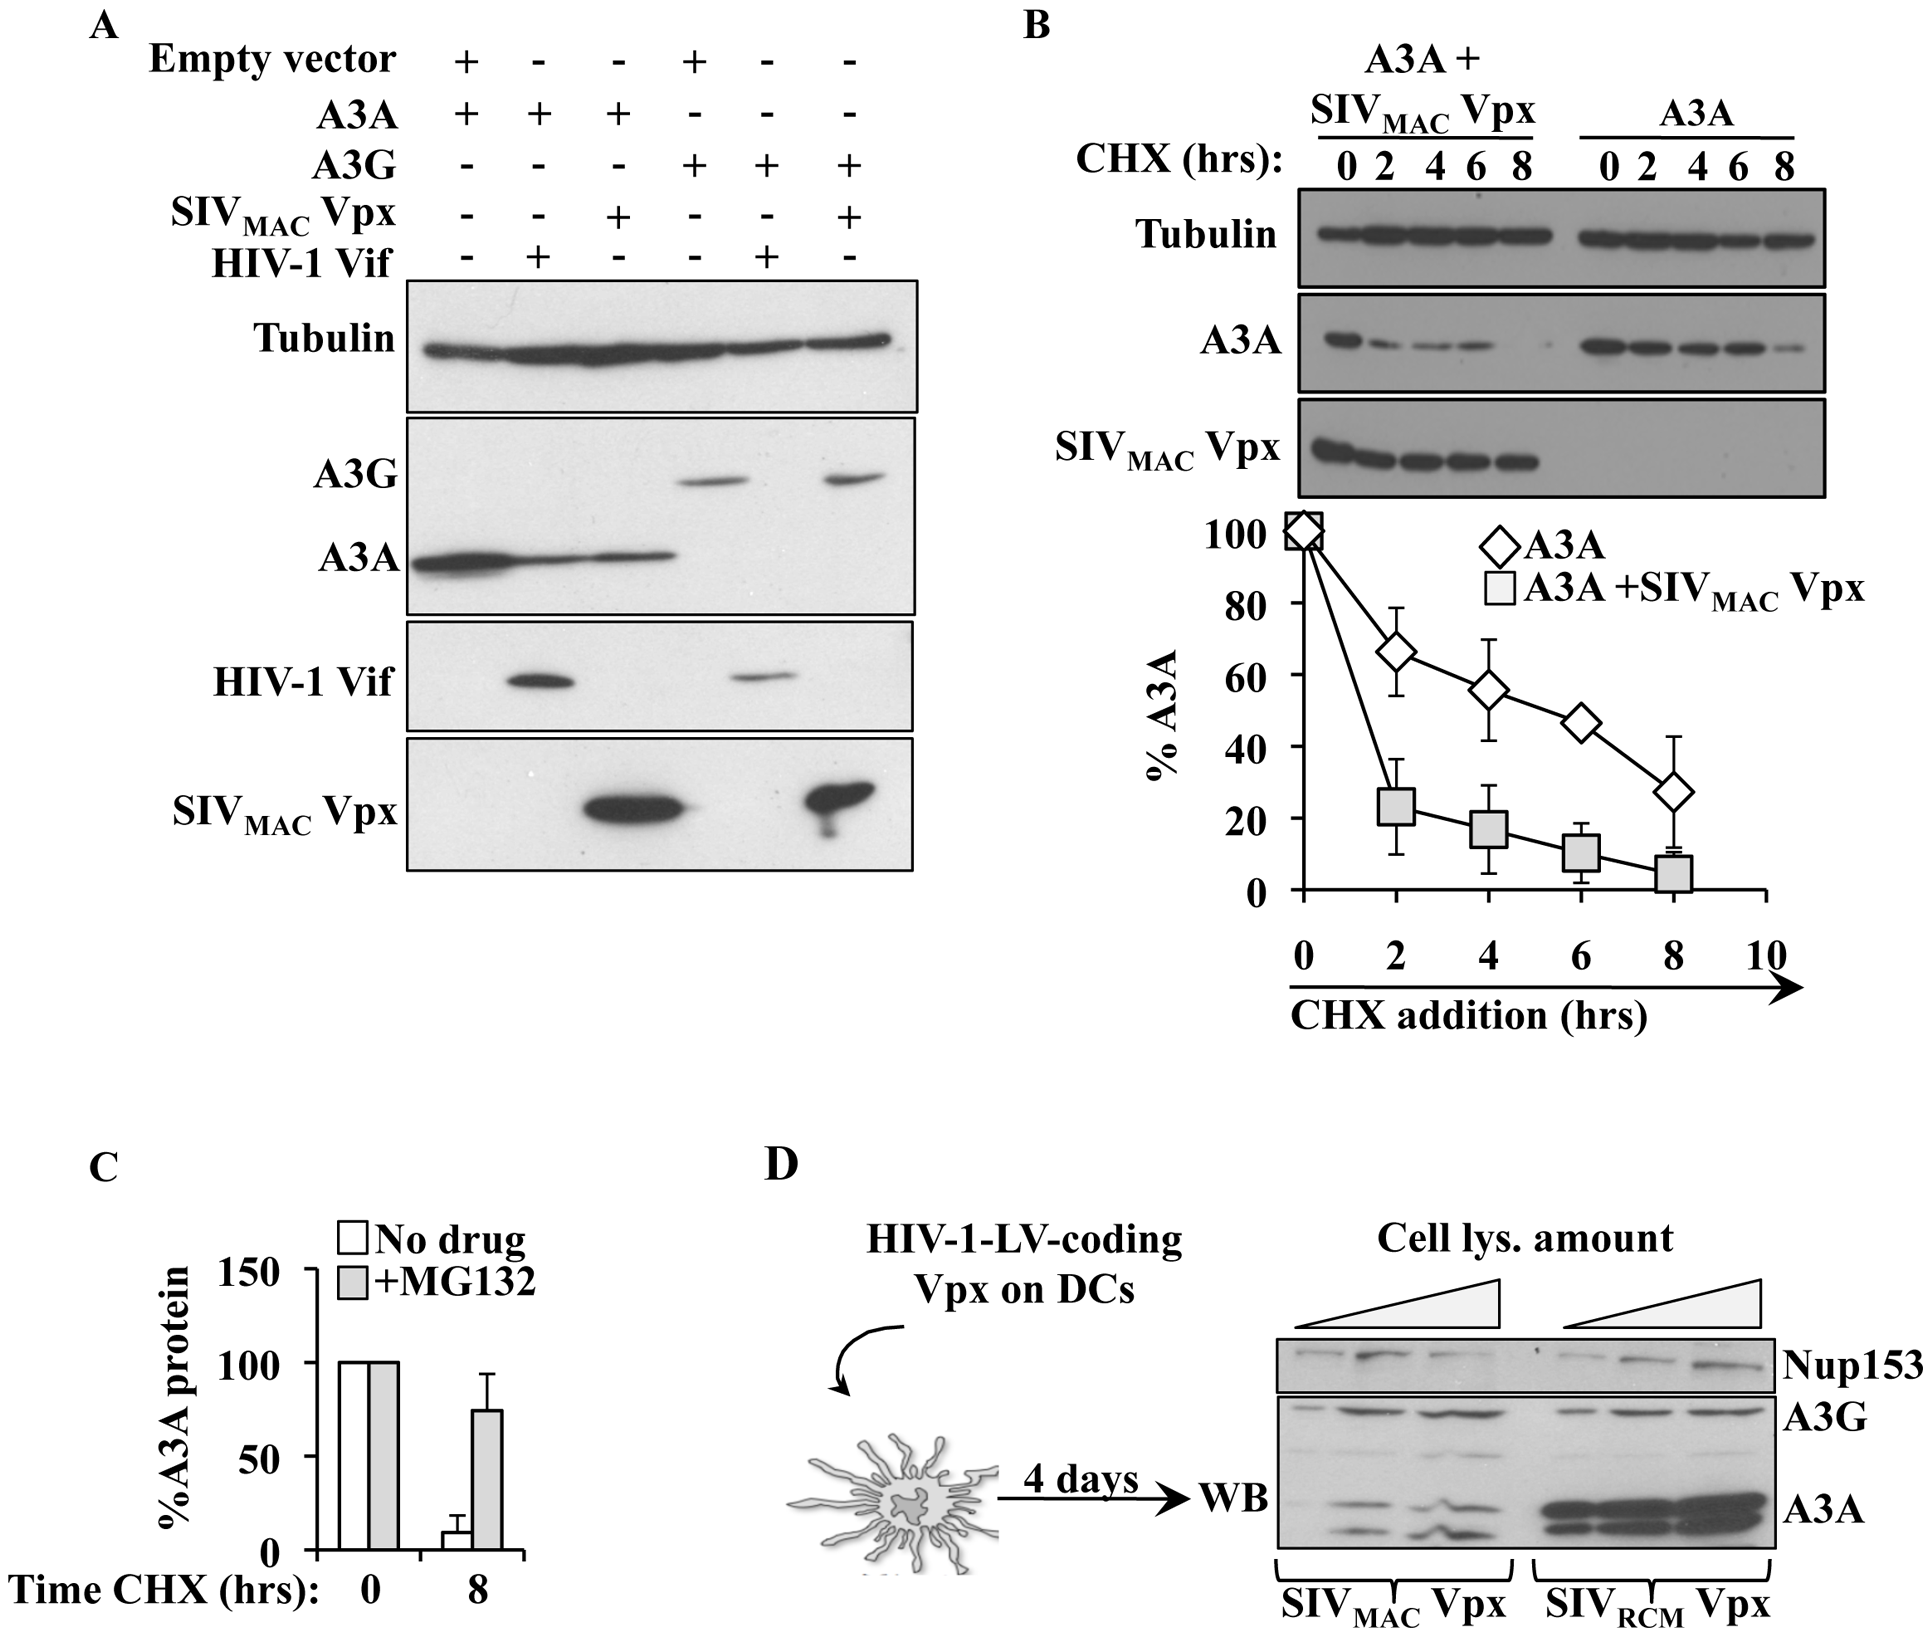 SIV<sub>MAC</sub> Vpx degrades A3A but not A3G in both HeLa cells and DCs.